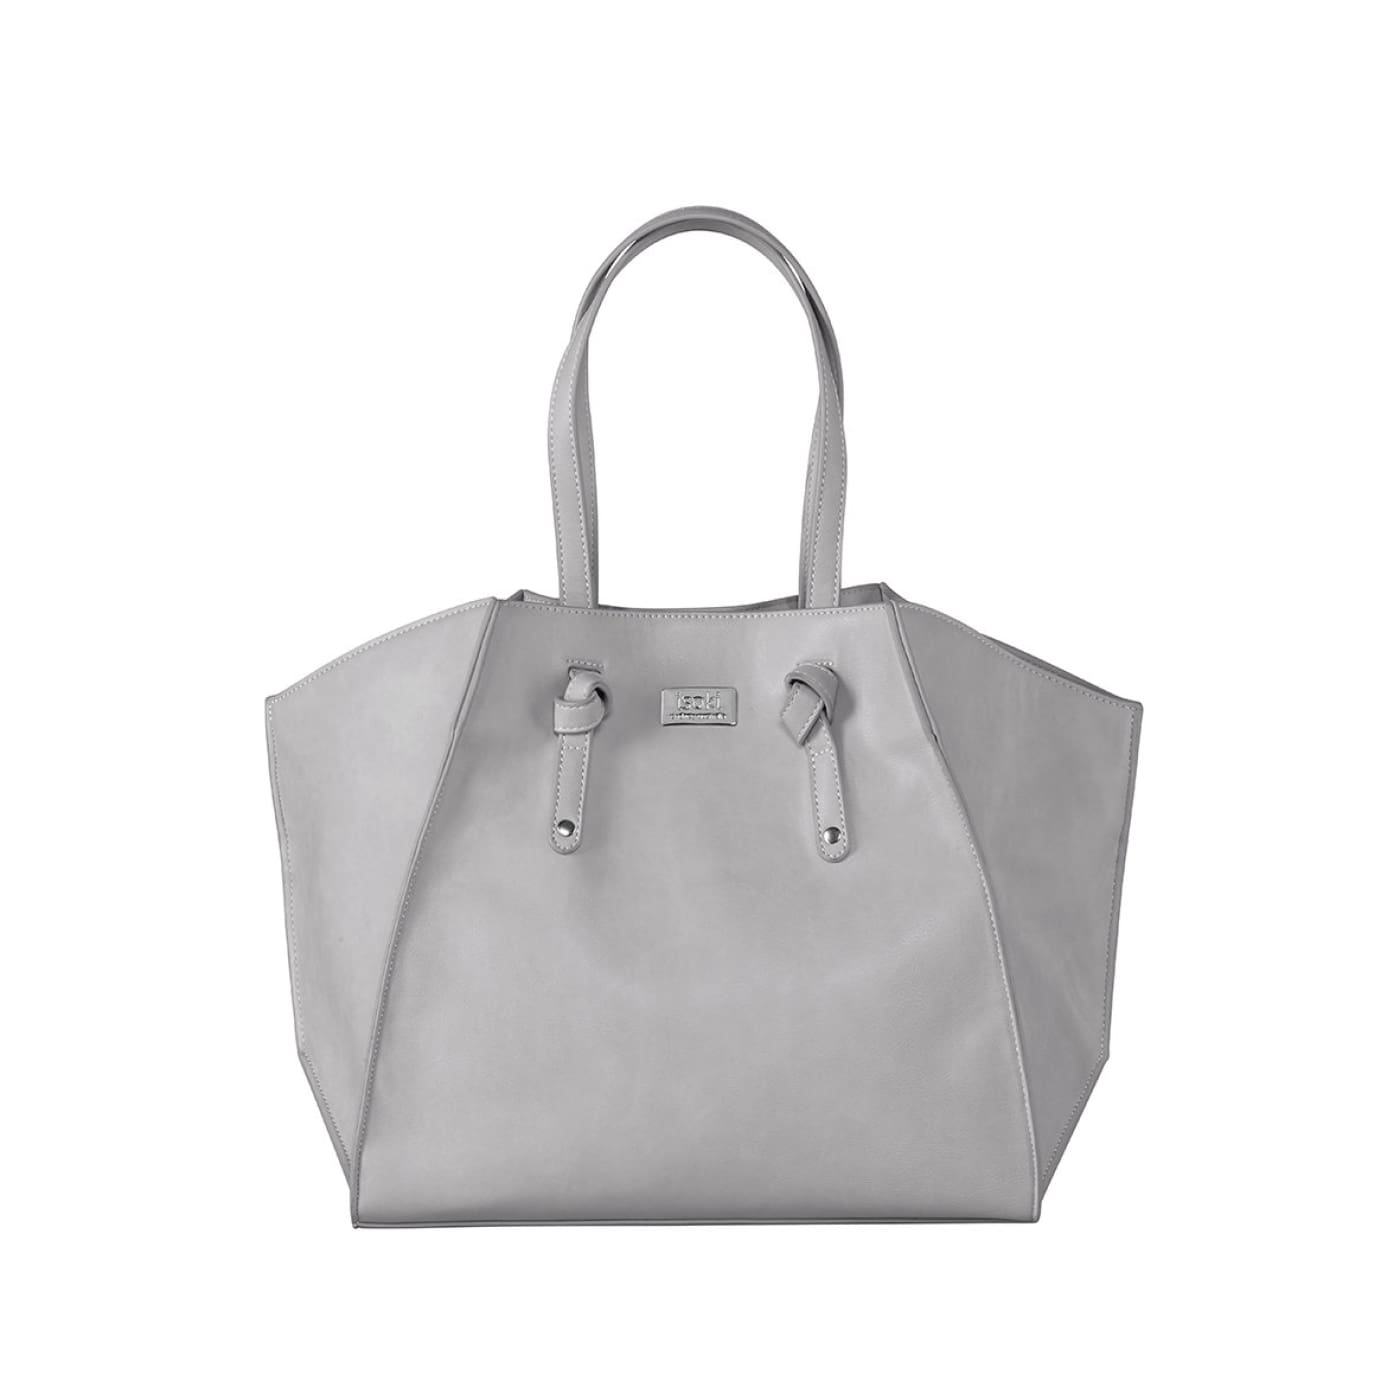 Isoki Easy Access Tote - Portsea - ON THE GO - NAPPY BAGS/LUGGAGE